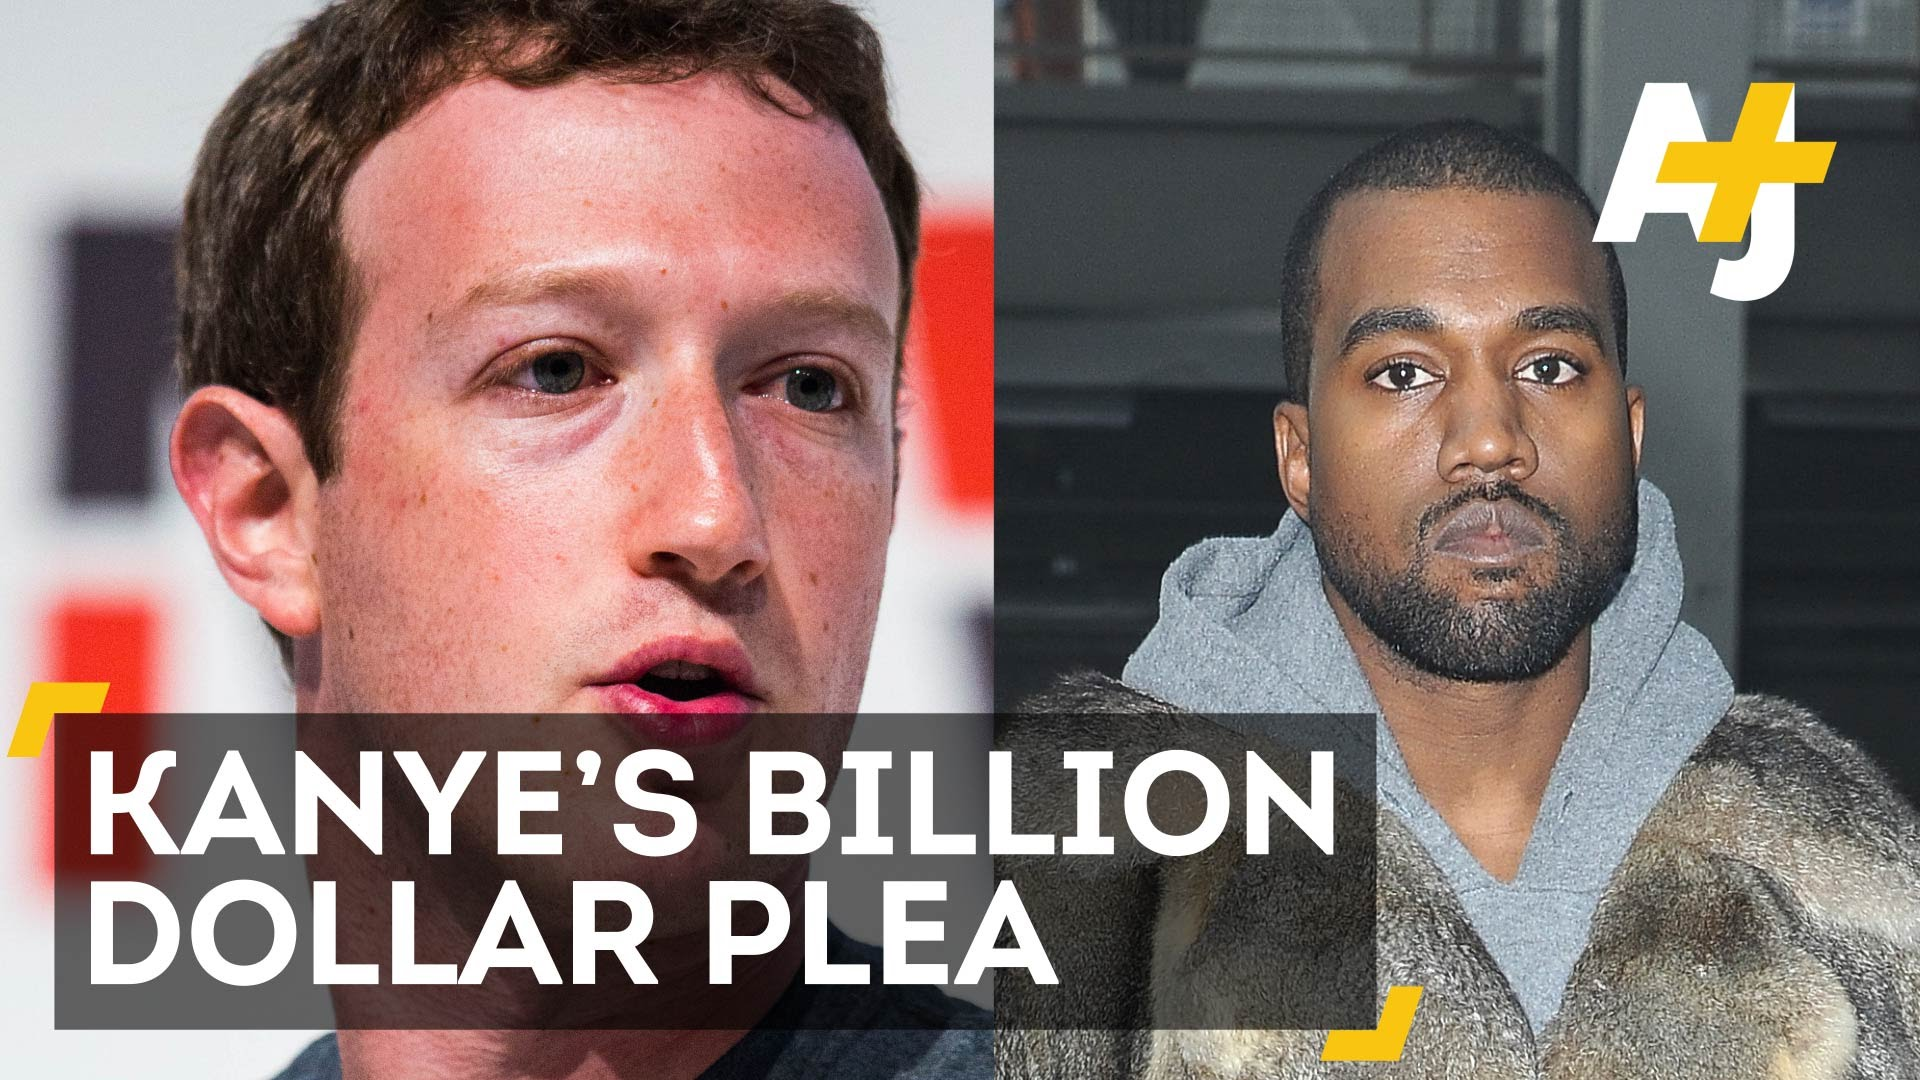 Kanye West Asks Mark Zuckerberg For $1 Billion